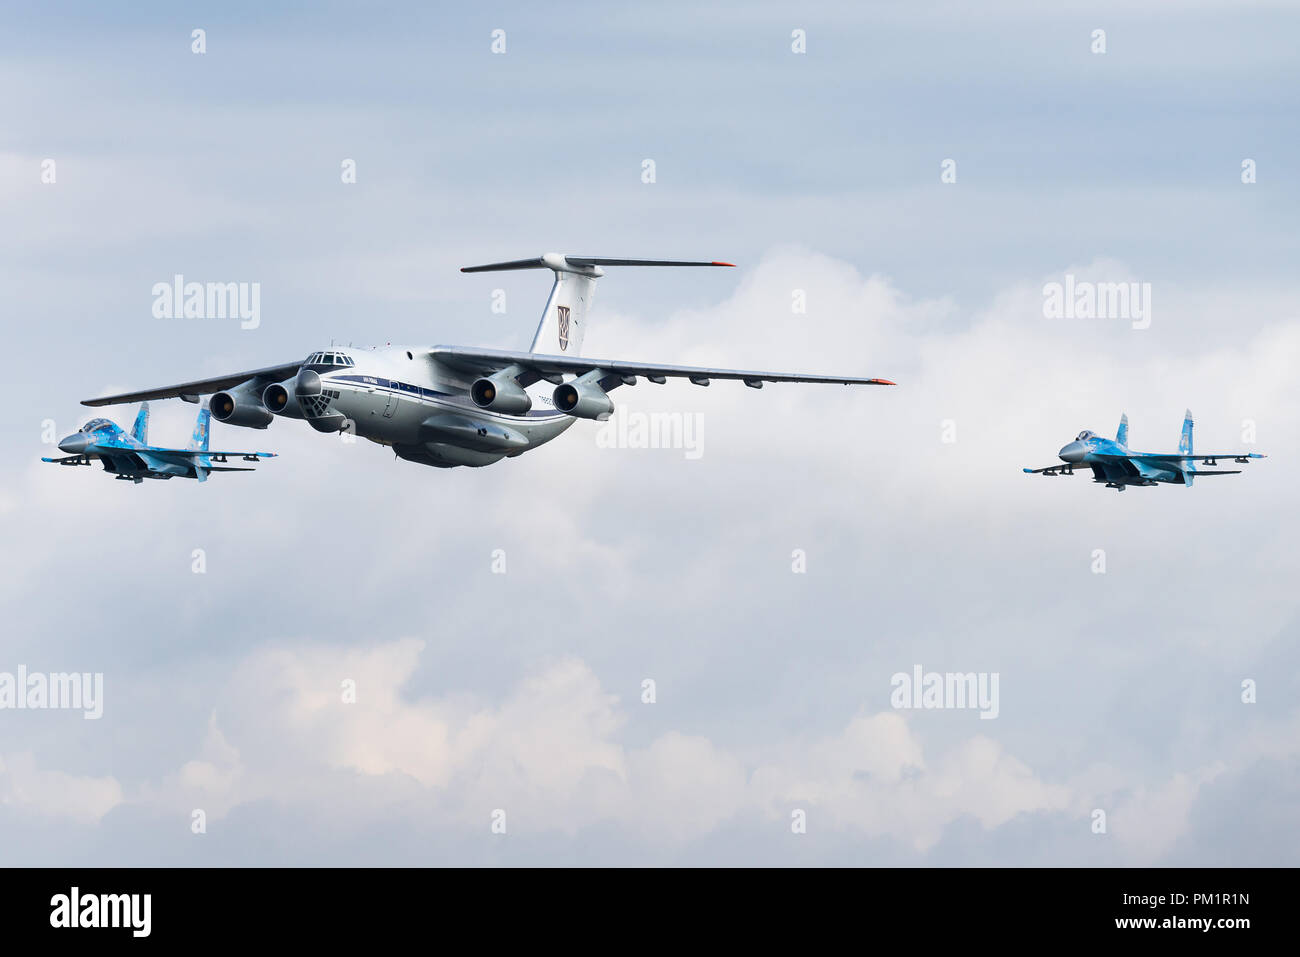 A Ilyushin Il-76 military transport aircraft of the Ukrainian Air Force is escorted by two Sukhoi Su-27 fighter jets. - Stock Image